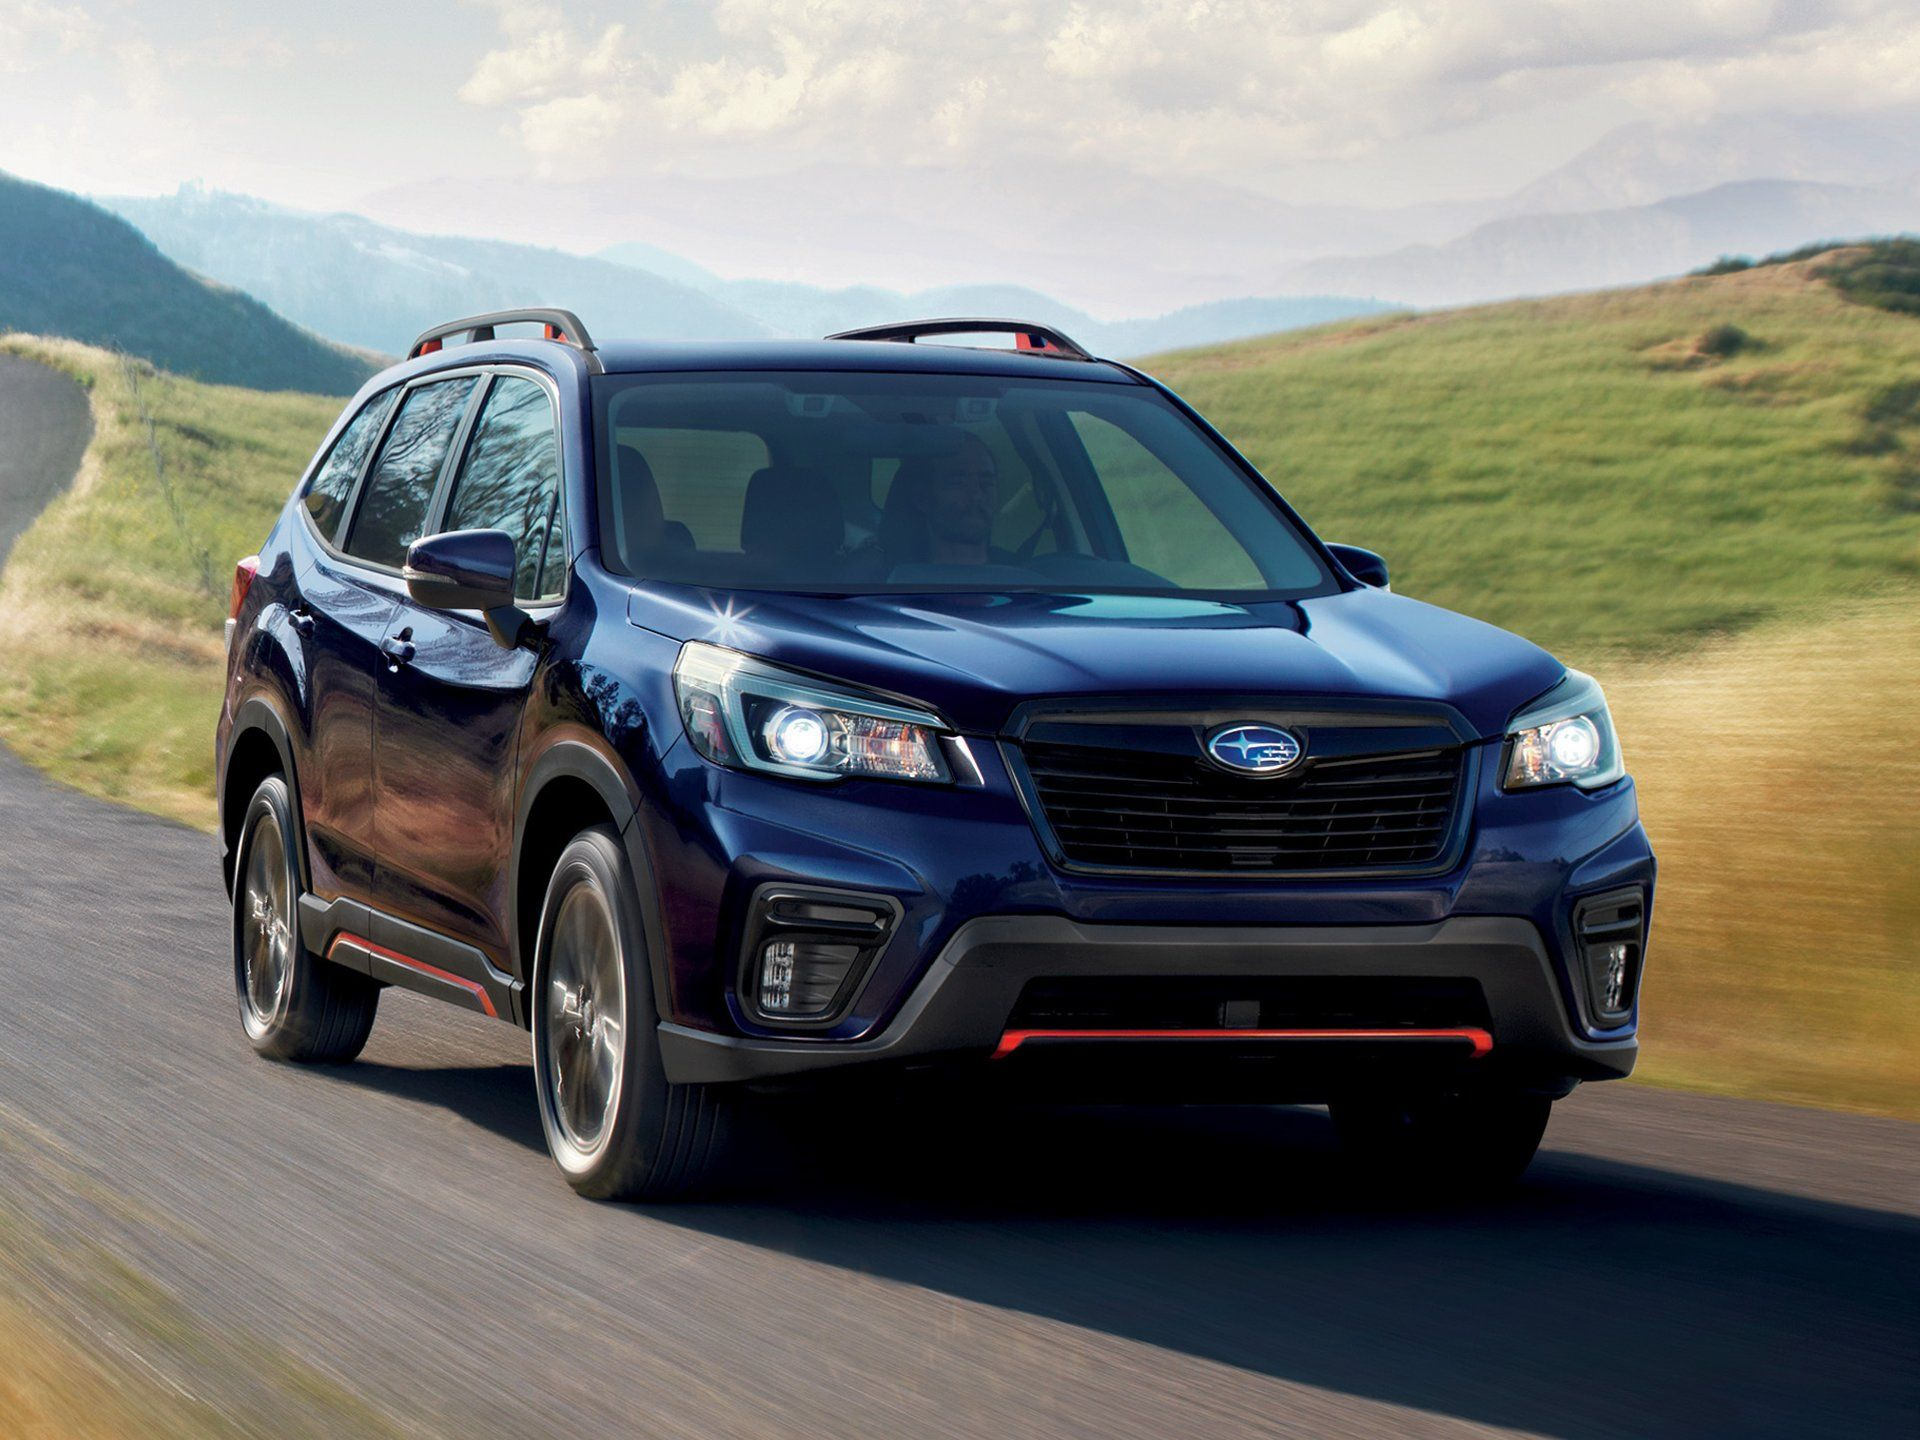 We Drove A 39 000 Toyota Rav4 And A 32 000 Subaru Forester To See Which One Is The Better Compact Suv Here S The Verdict Subaru Forester Subaru Toyota